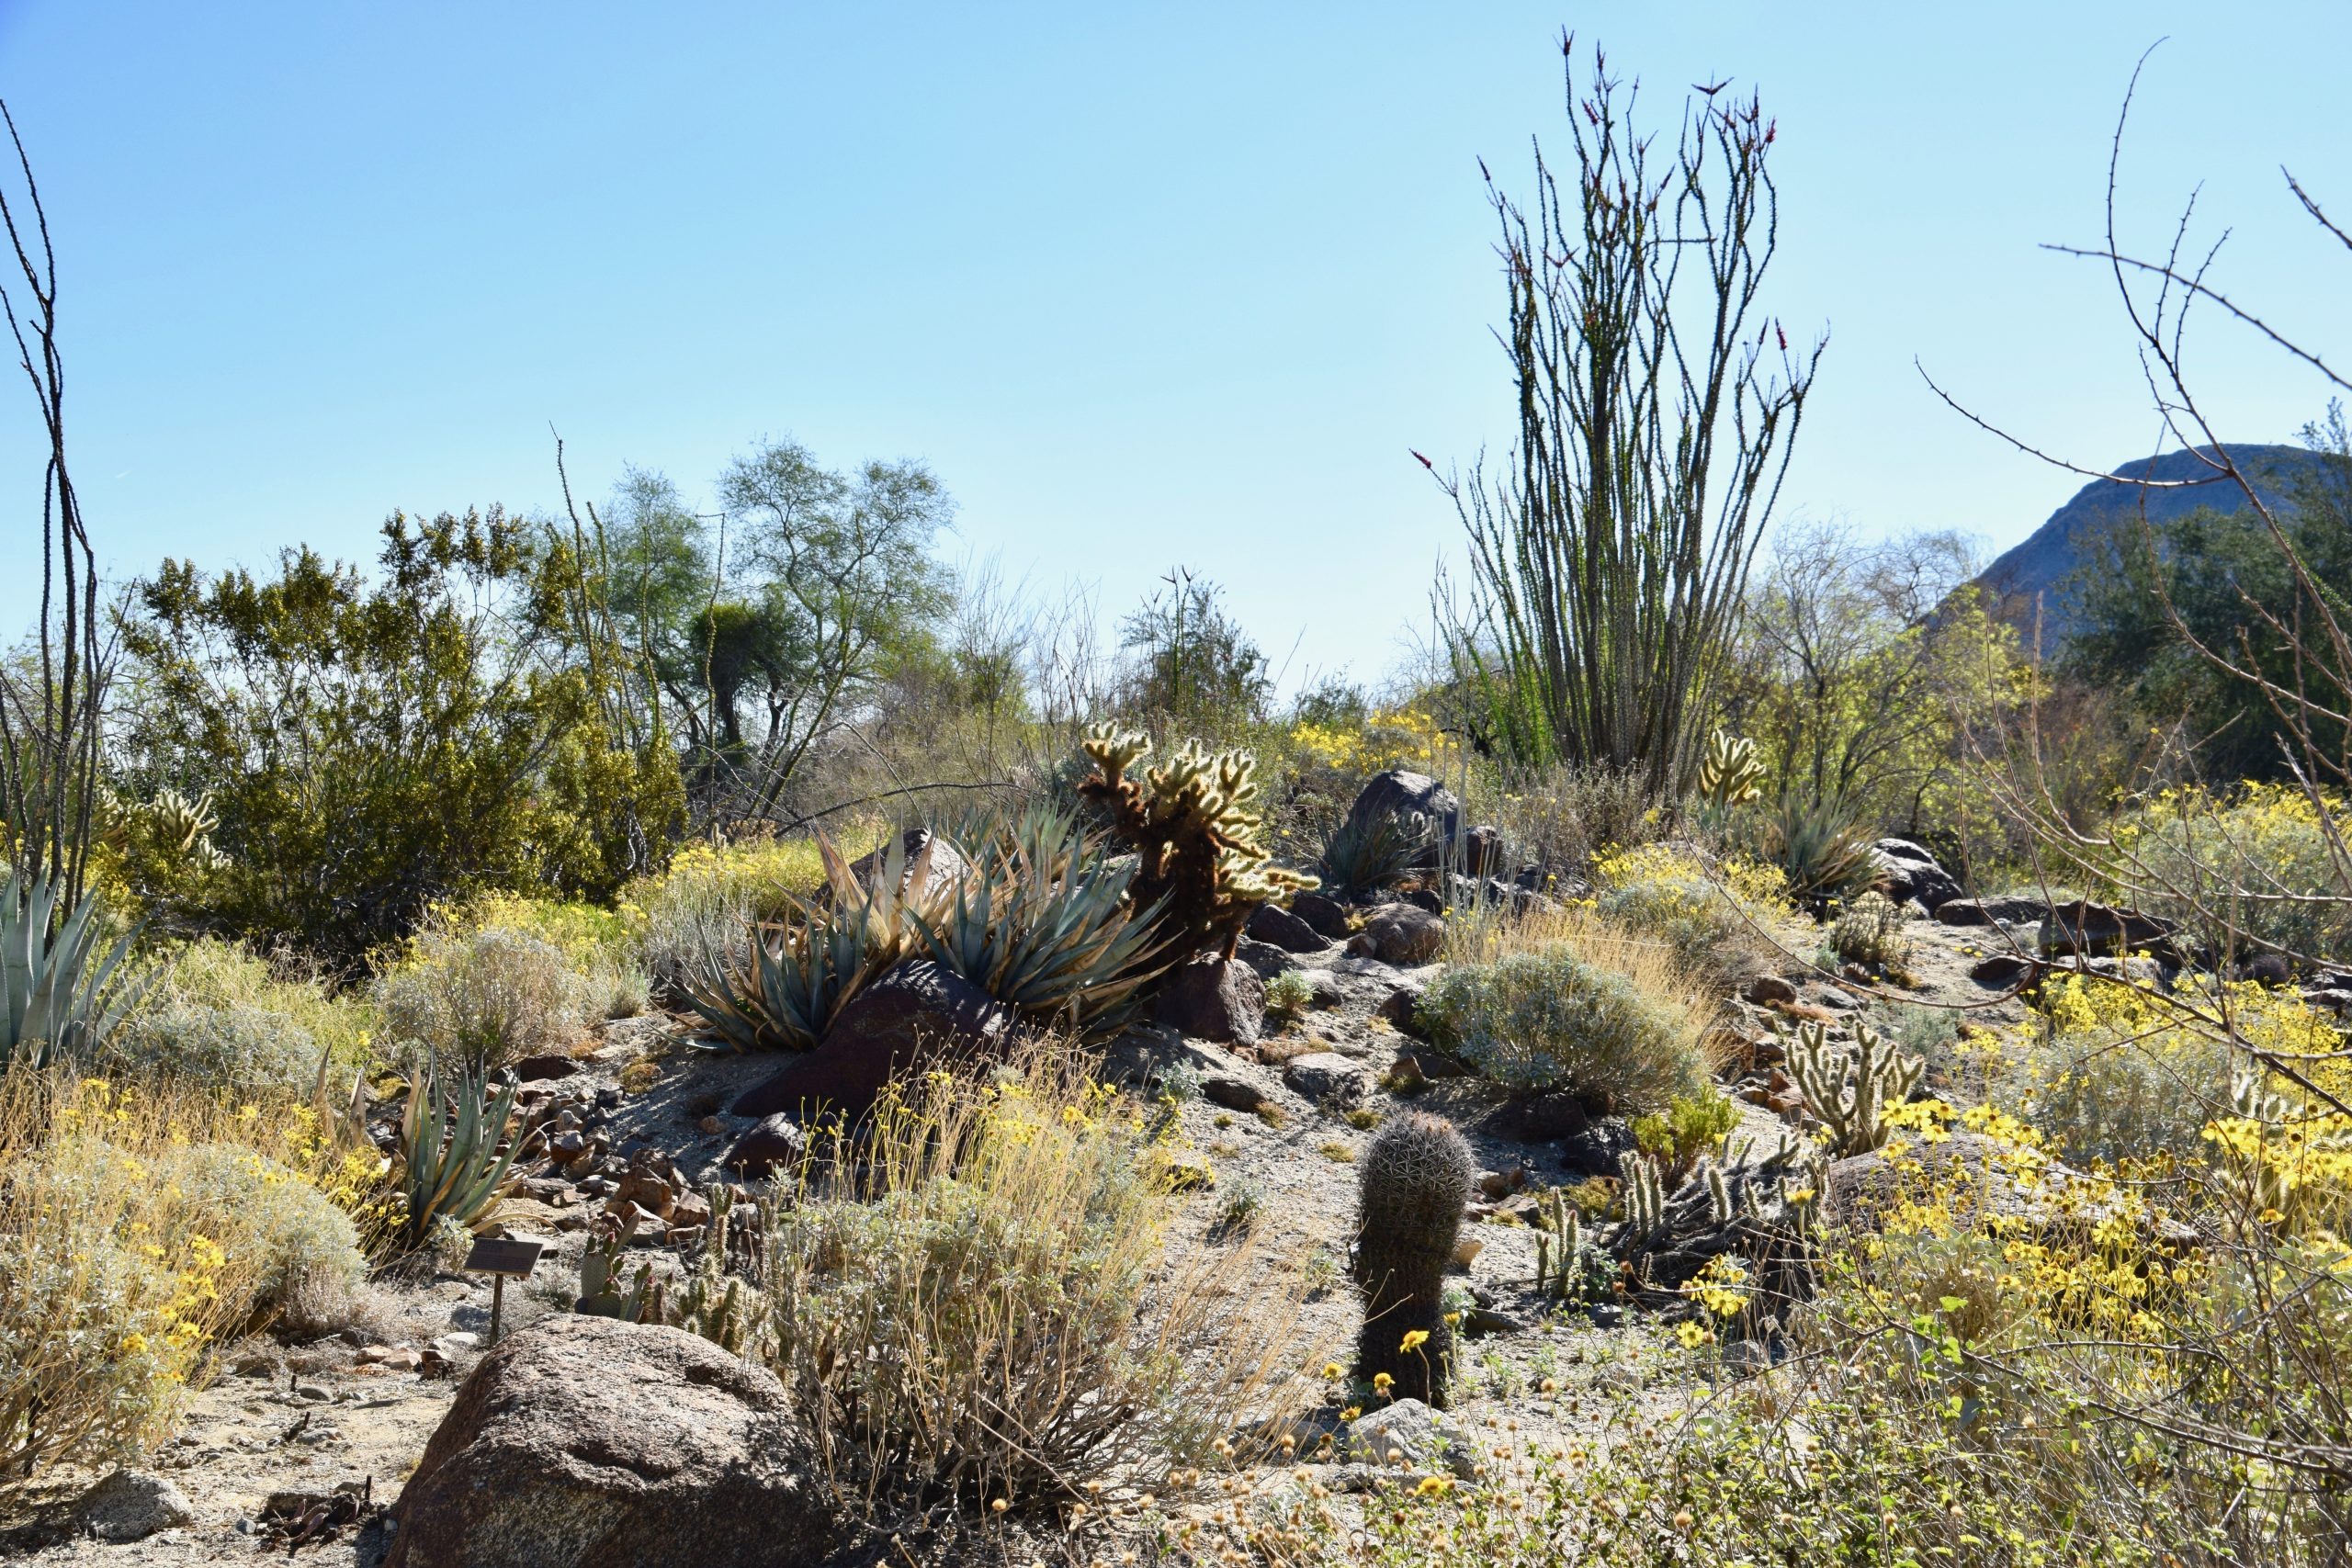 Spring desert flowers bloom on rocky hillside in Palm Springs